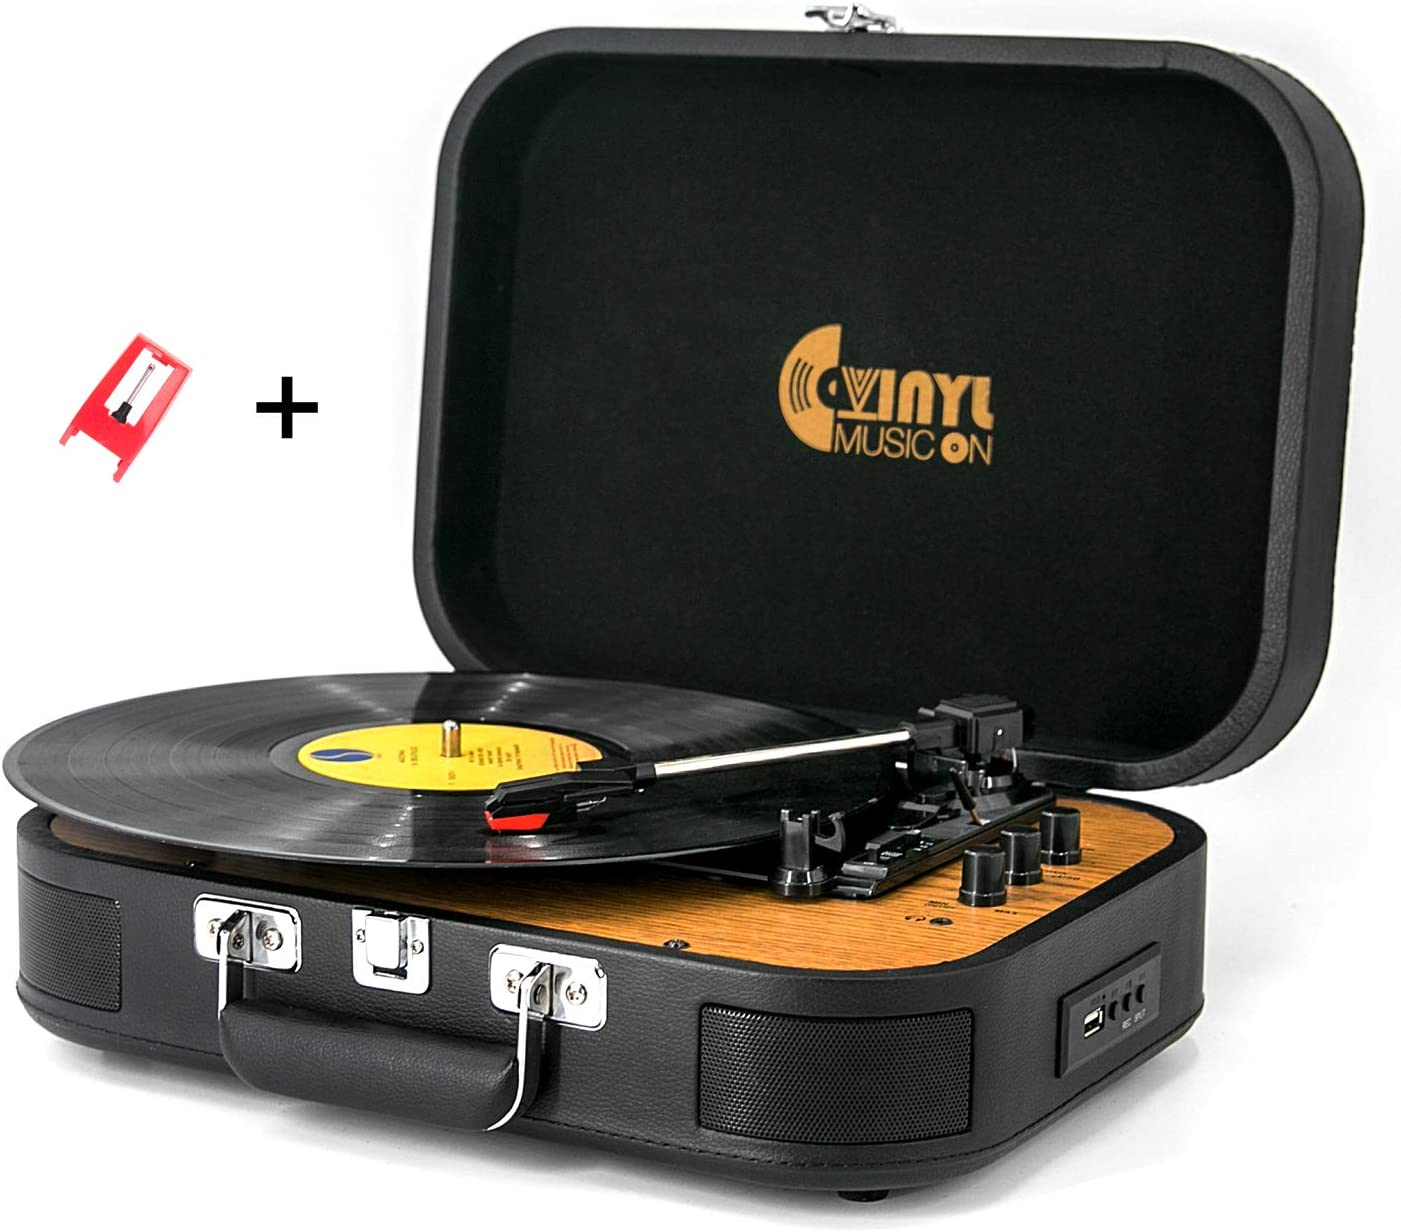 USB Bluetooth Record Player with Stereo Speakers,3 Speed Briefcase Turntable with USB Play&Encoding, Pitch Control and RCA Output&Aux Input,Black